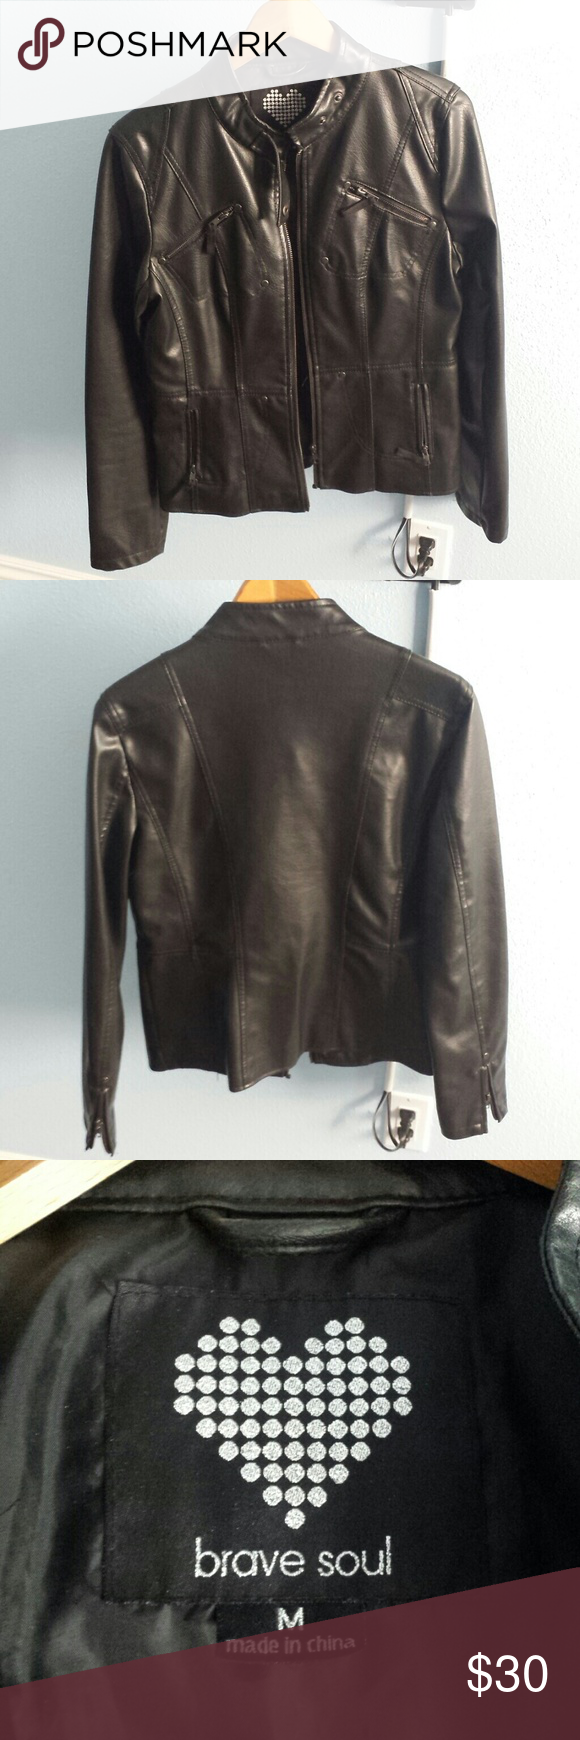 Faux Leather Jacket Shell Is 100 Polyester With Pvc Coating Lining Is 100 Polyester Brave Soul Jackets Coats Fashion Clothes Design Fashion Design